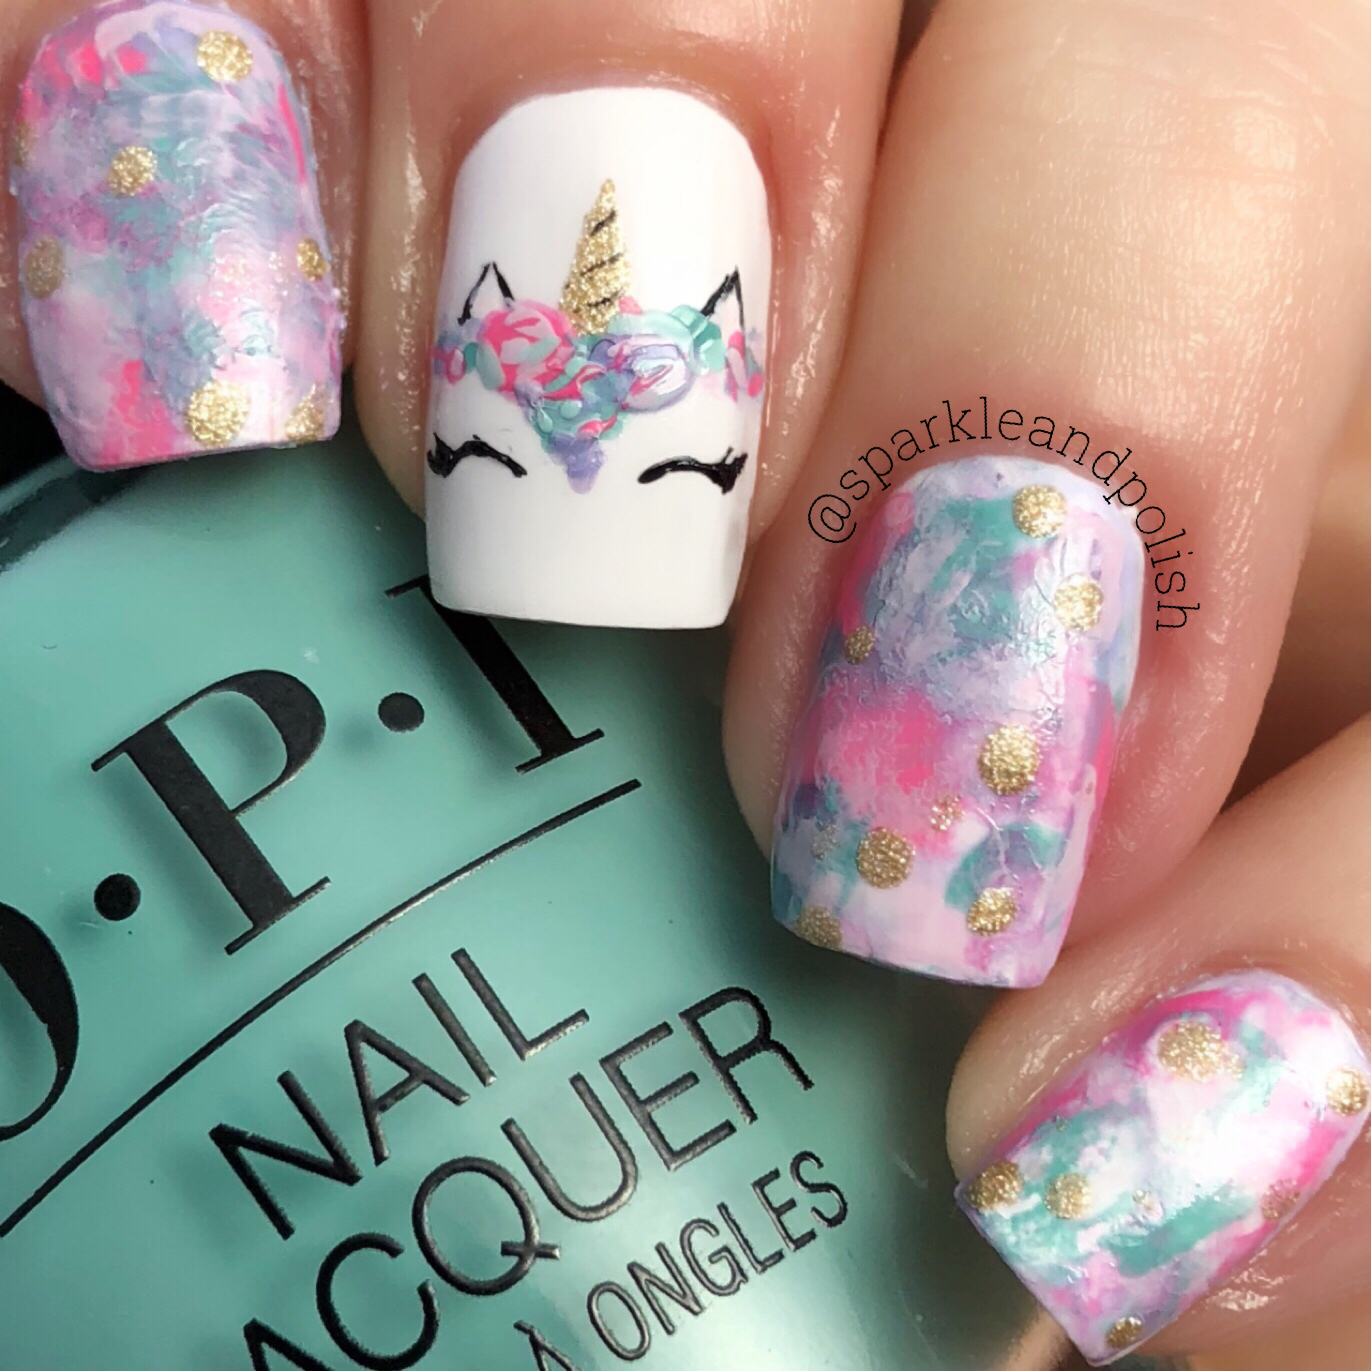 A Little Sparkle and Polish - A Little Sparkle And Polish: Unicorn Nail Art